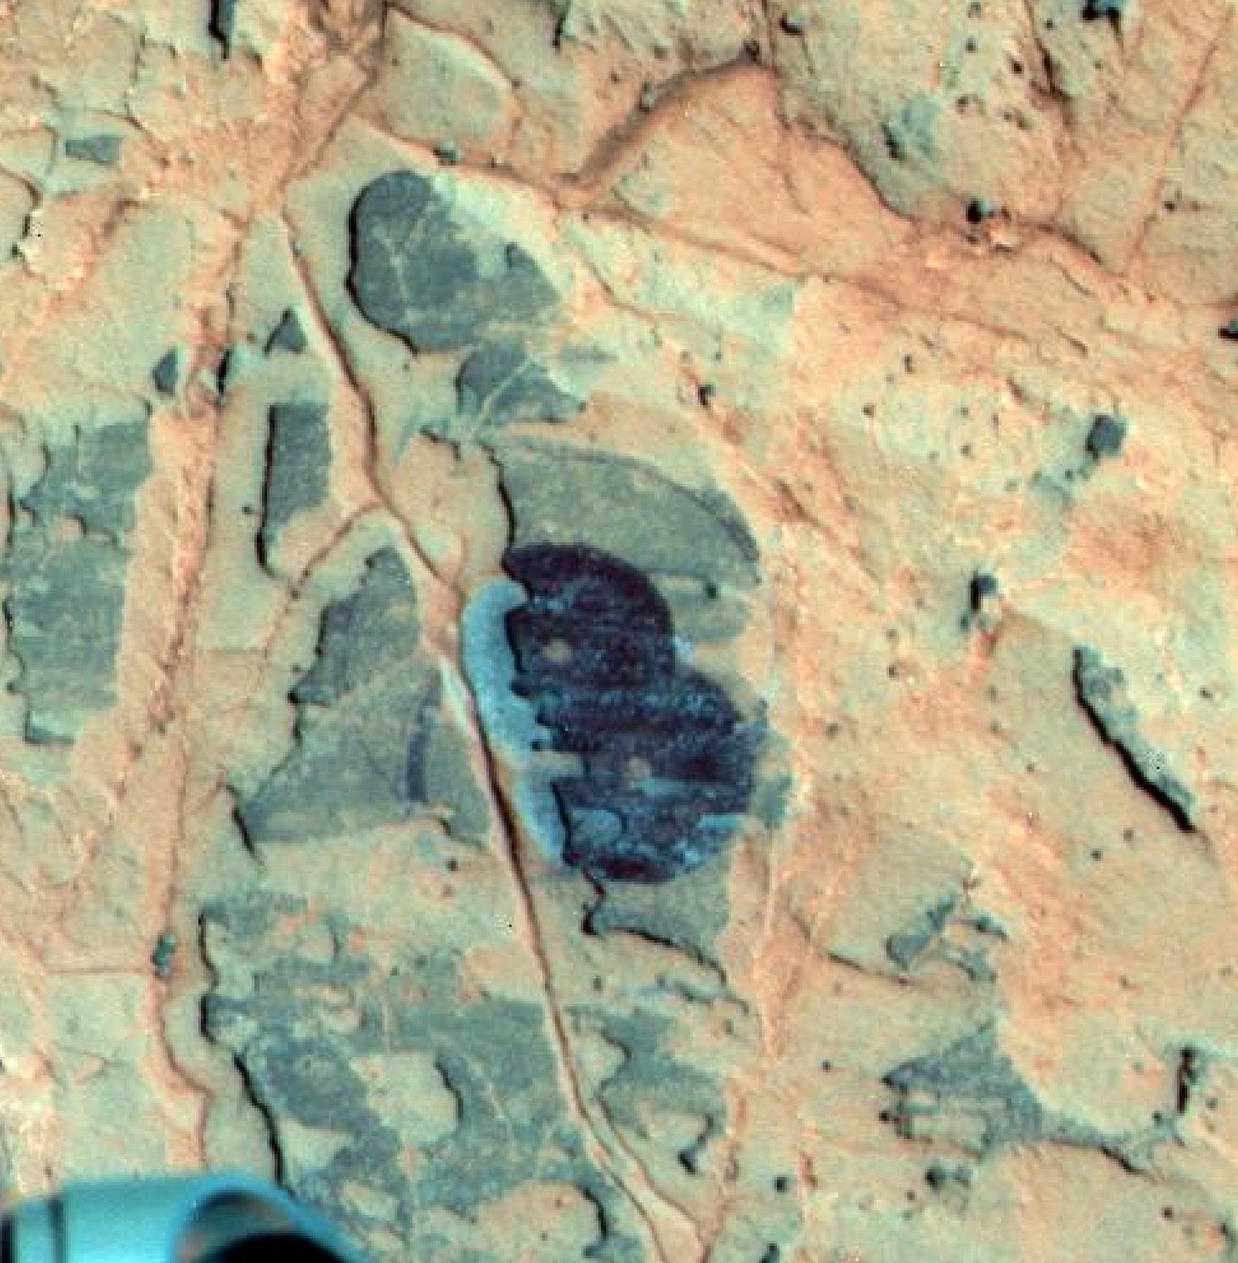 Researchers used NASA's Mars Exploration Rover Opportunity to find a water-related mineral on the ground that had been detected from orbit, and found it in the dark veneer of rocks on the rim of Endeavour Crater.